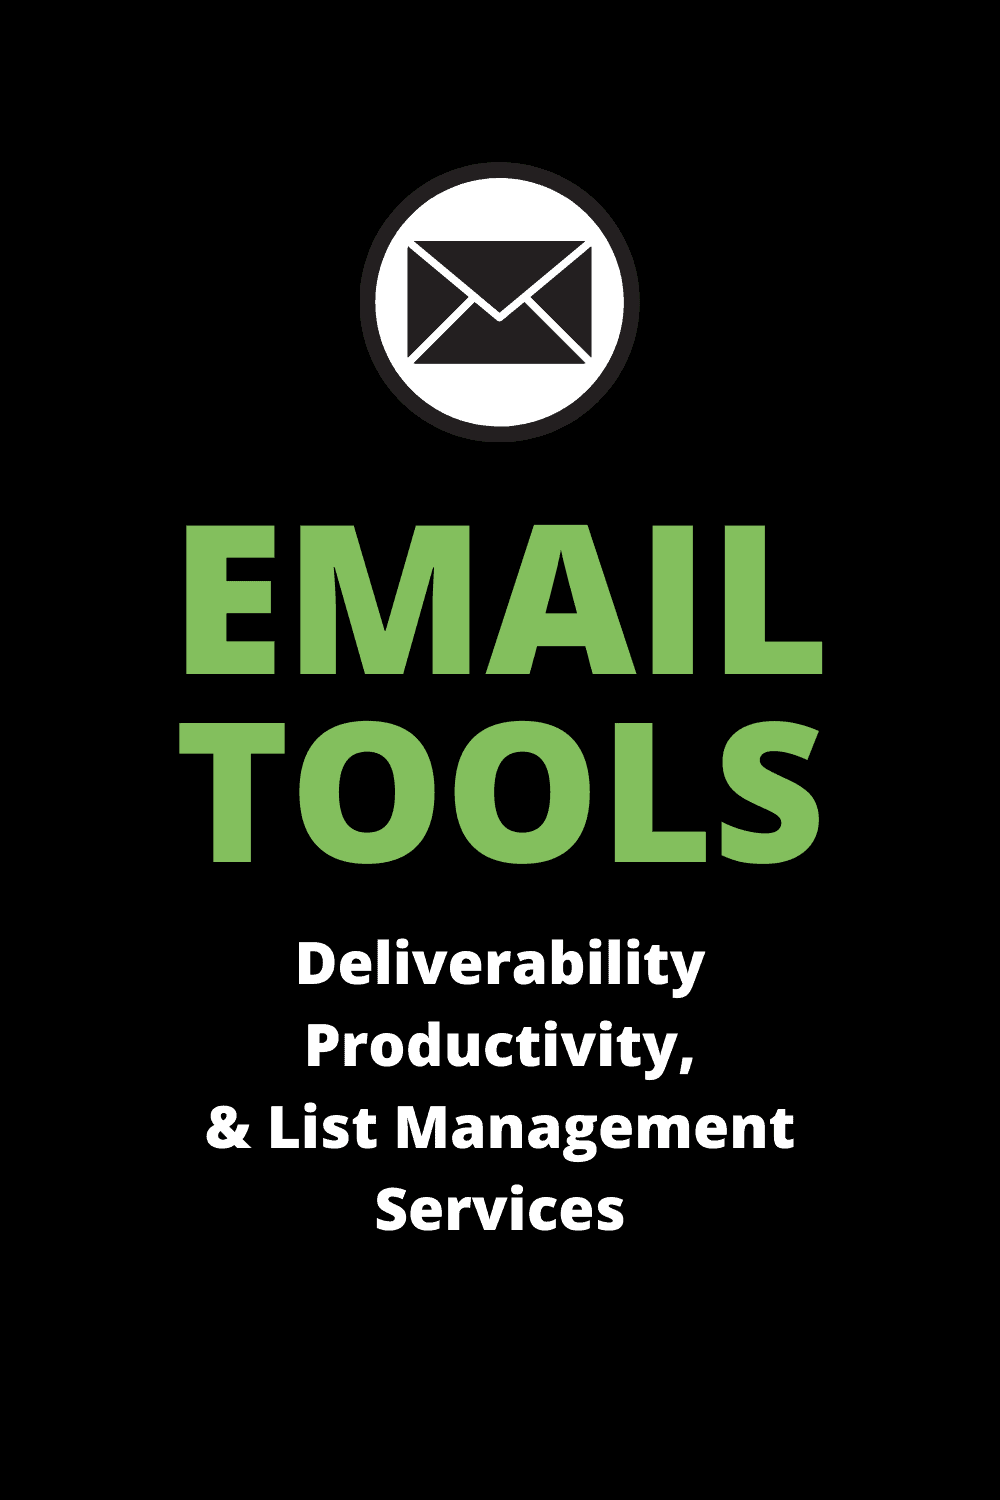 email tools pinterest